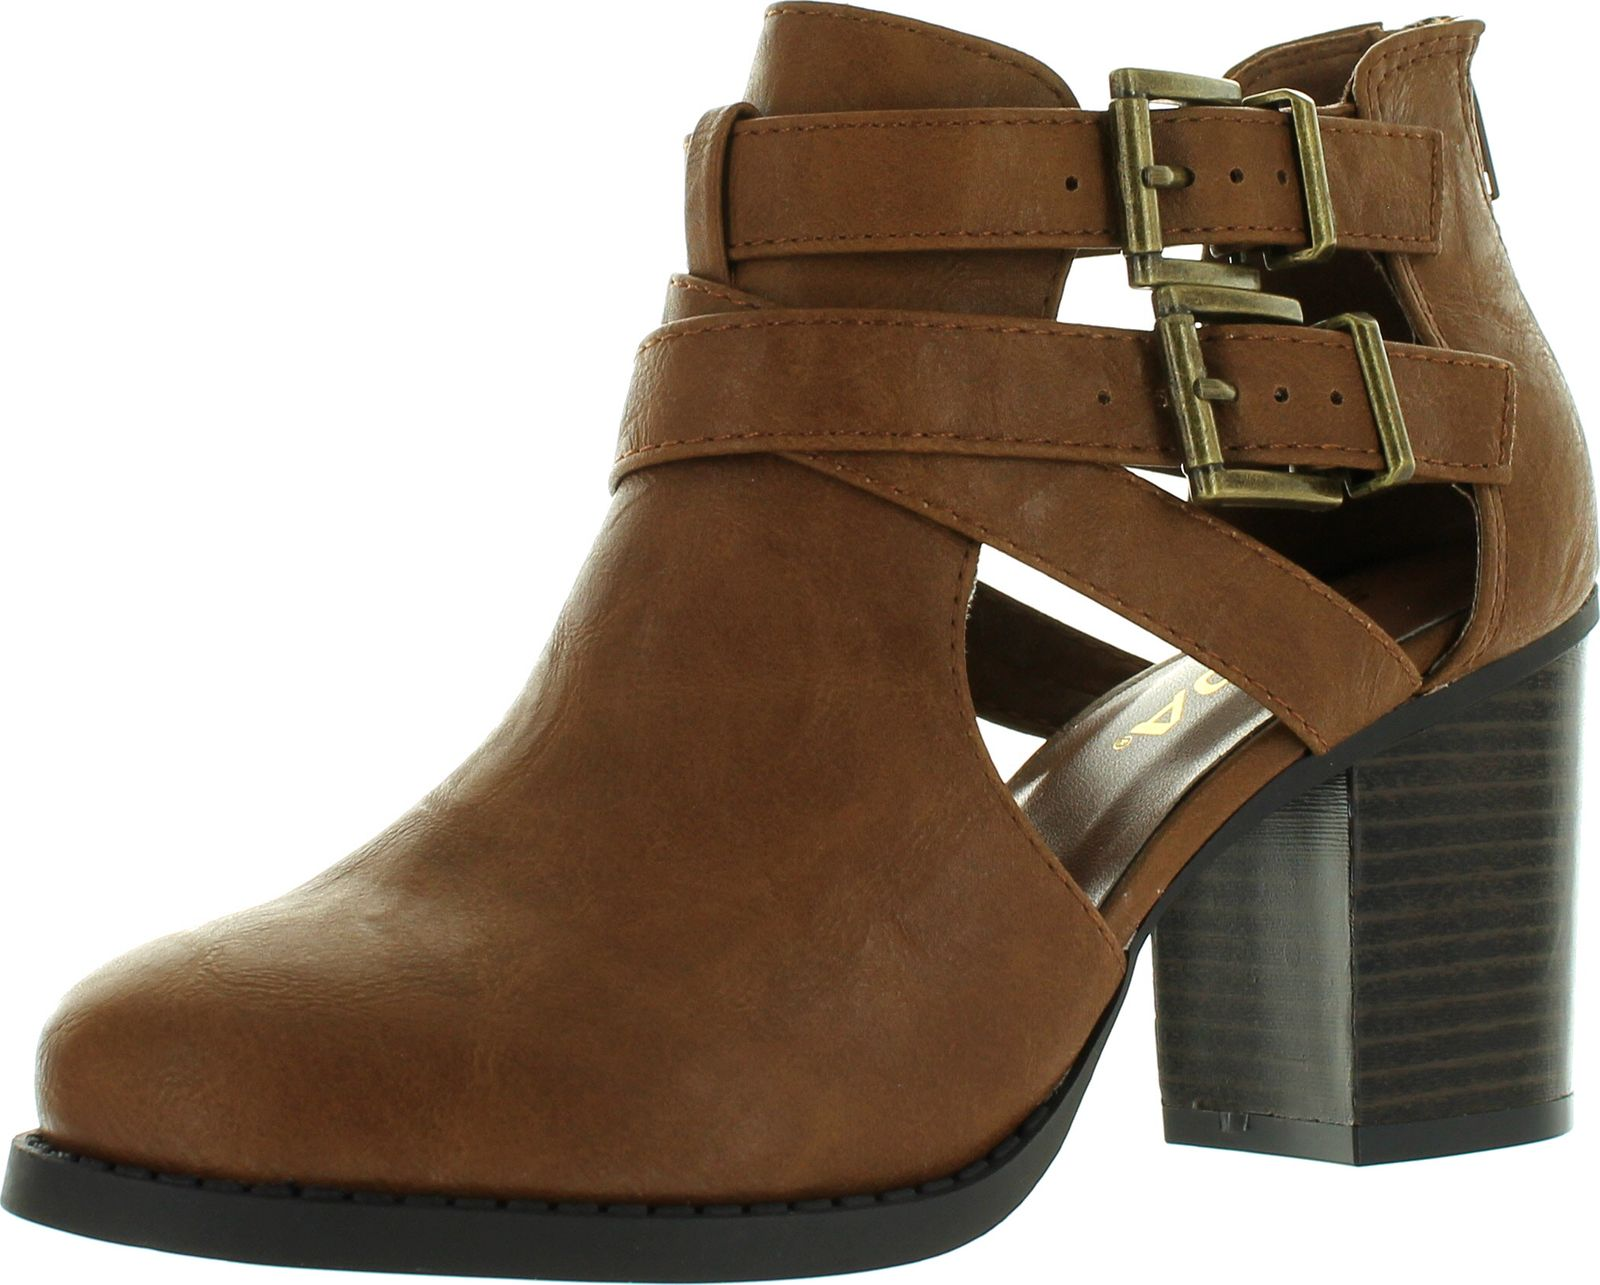 Women's Ankle Bootie With Low Heel and Cut-Out Side Design